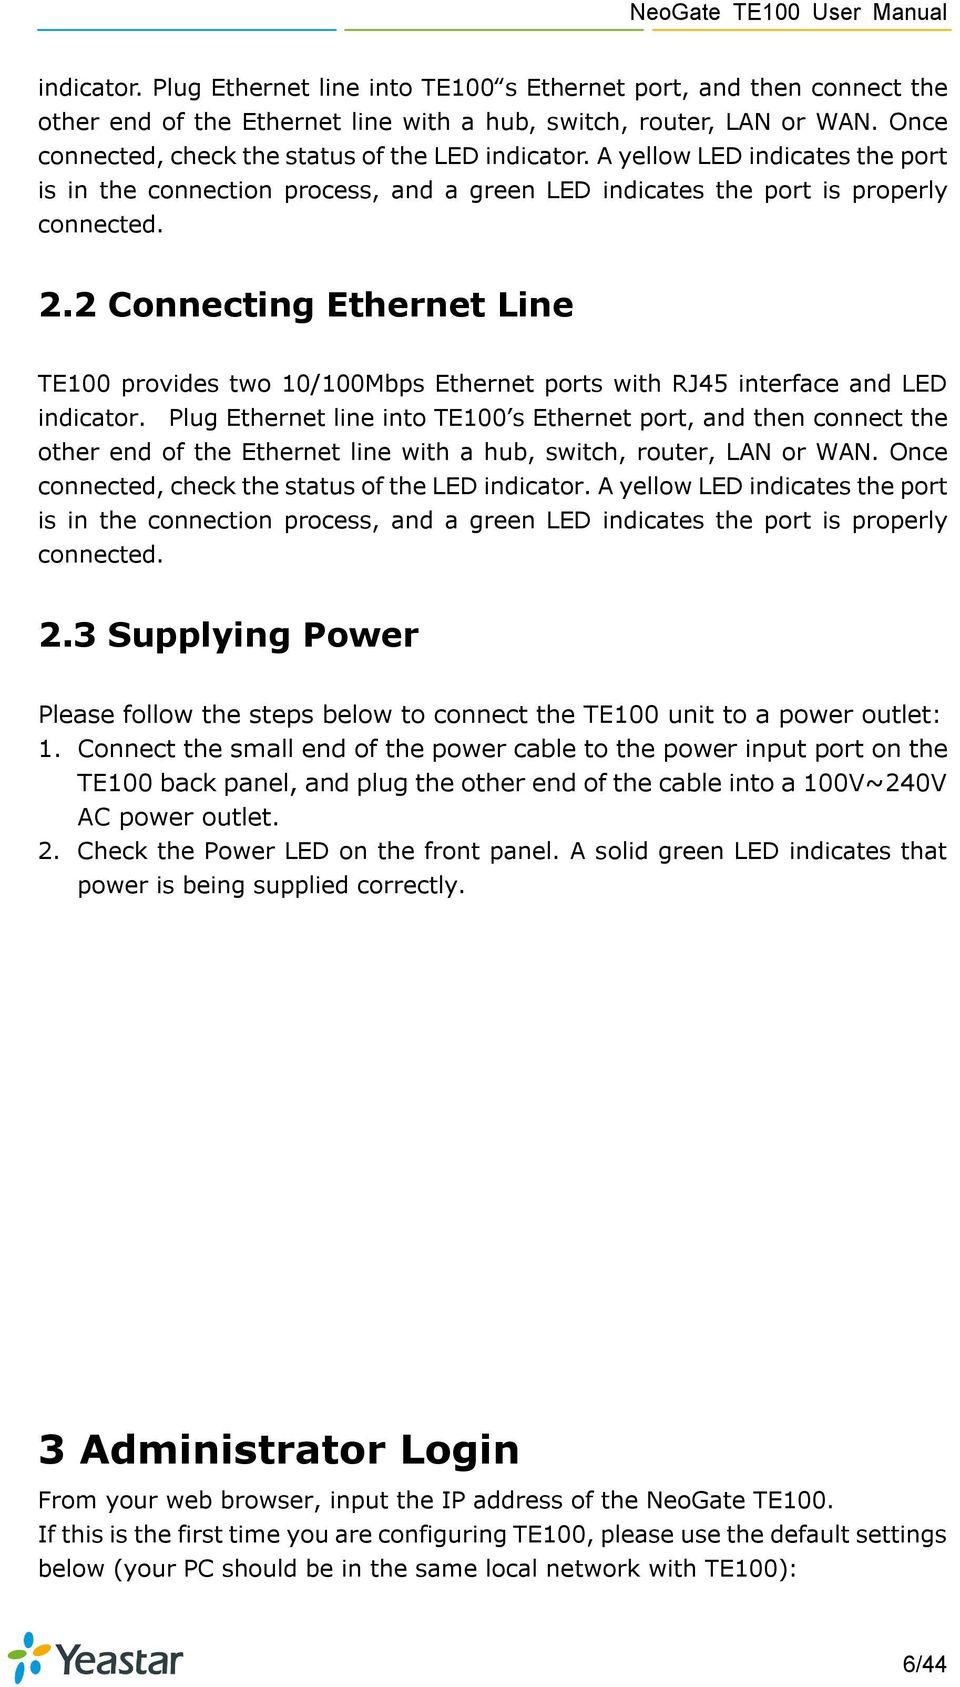 NeoGate TE100 User Manual - PDF